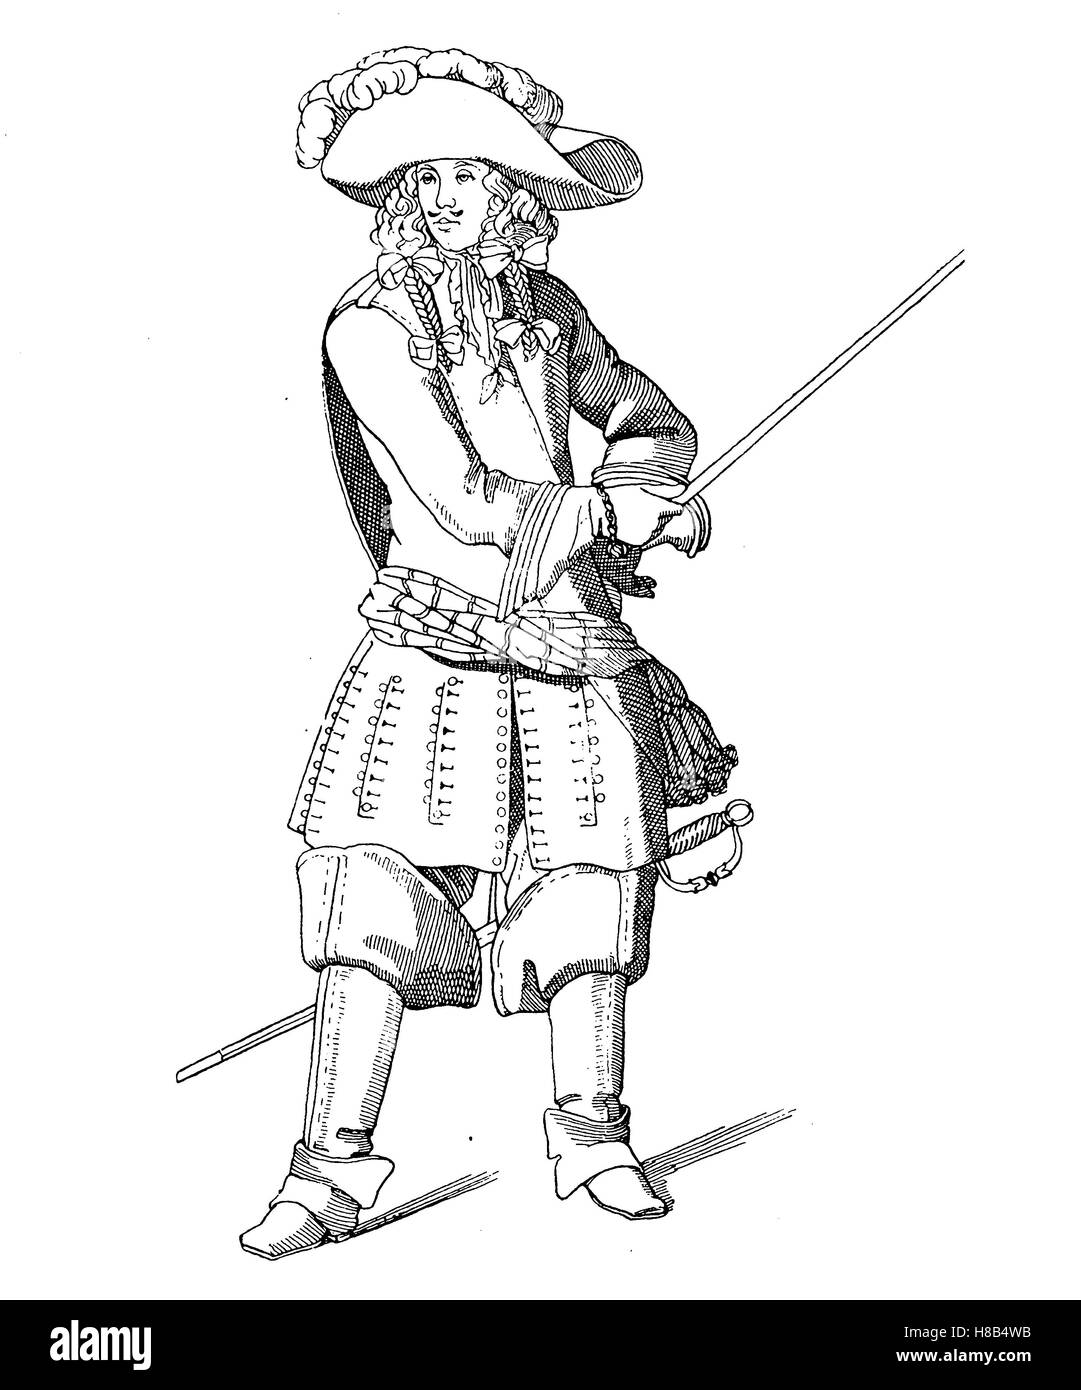 gendarmerie officer at the time of Louis XIV., 1675, france, History of fashion, costume story - Stock Image